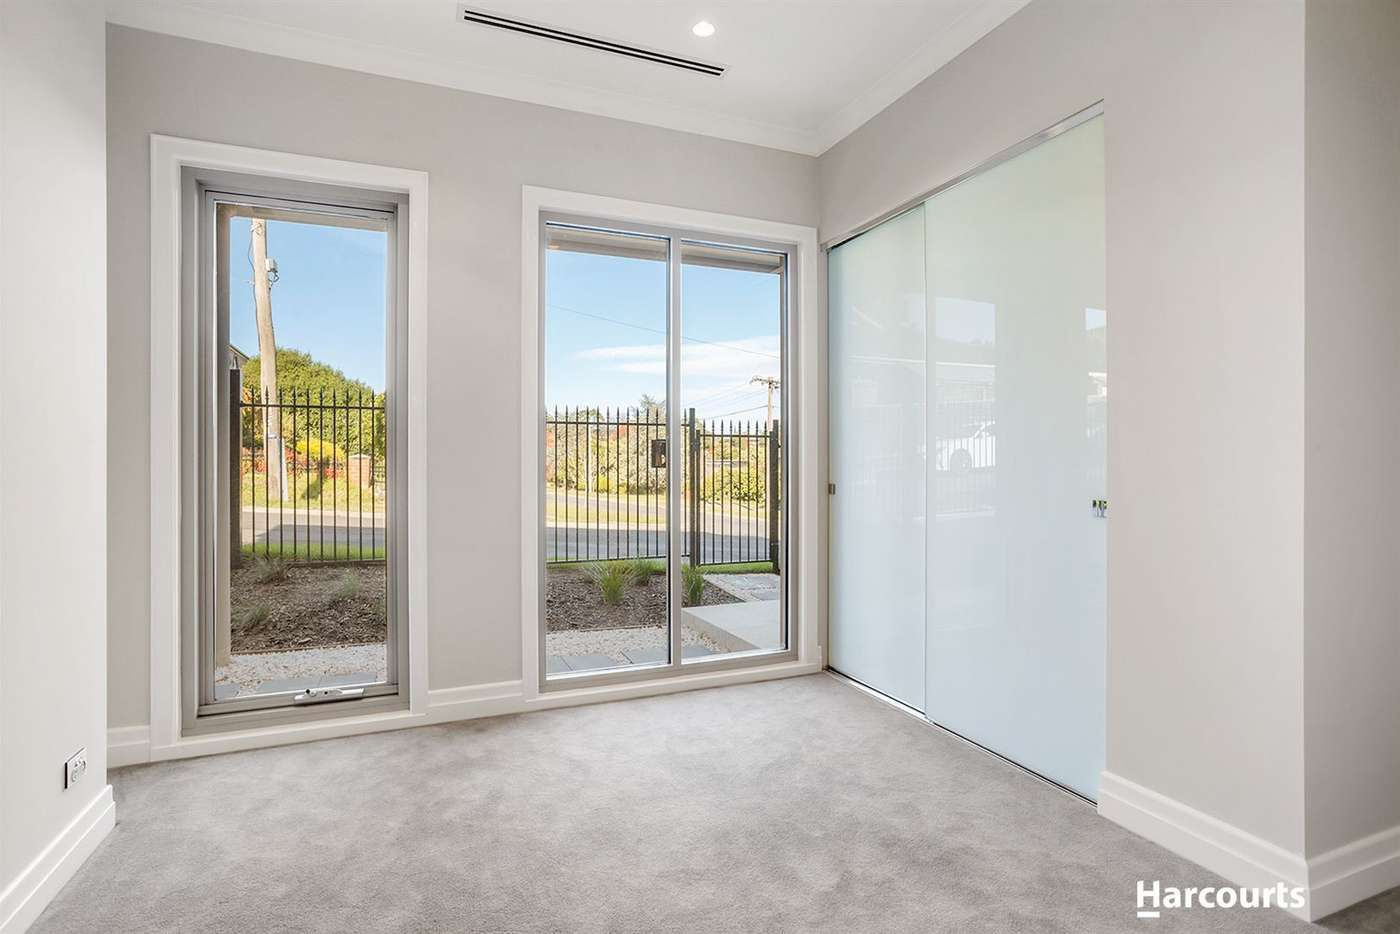 Fifth view of Homely house listing, 35 Turnley Street, Balwyn North VIC 3104